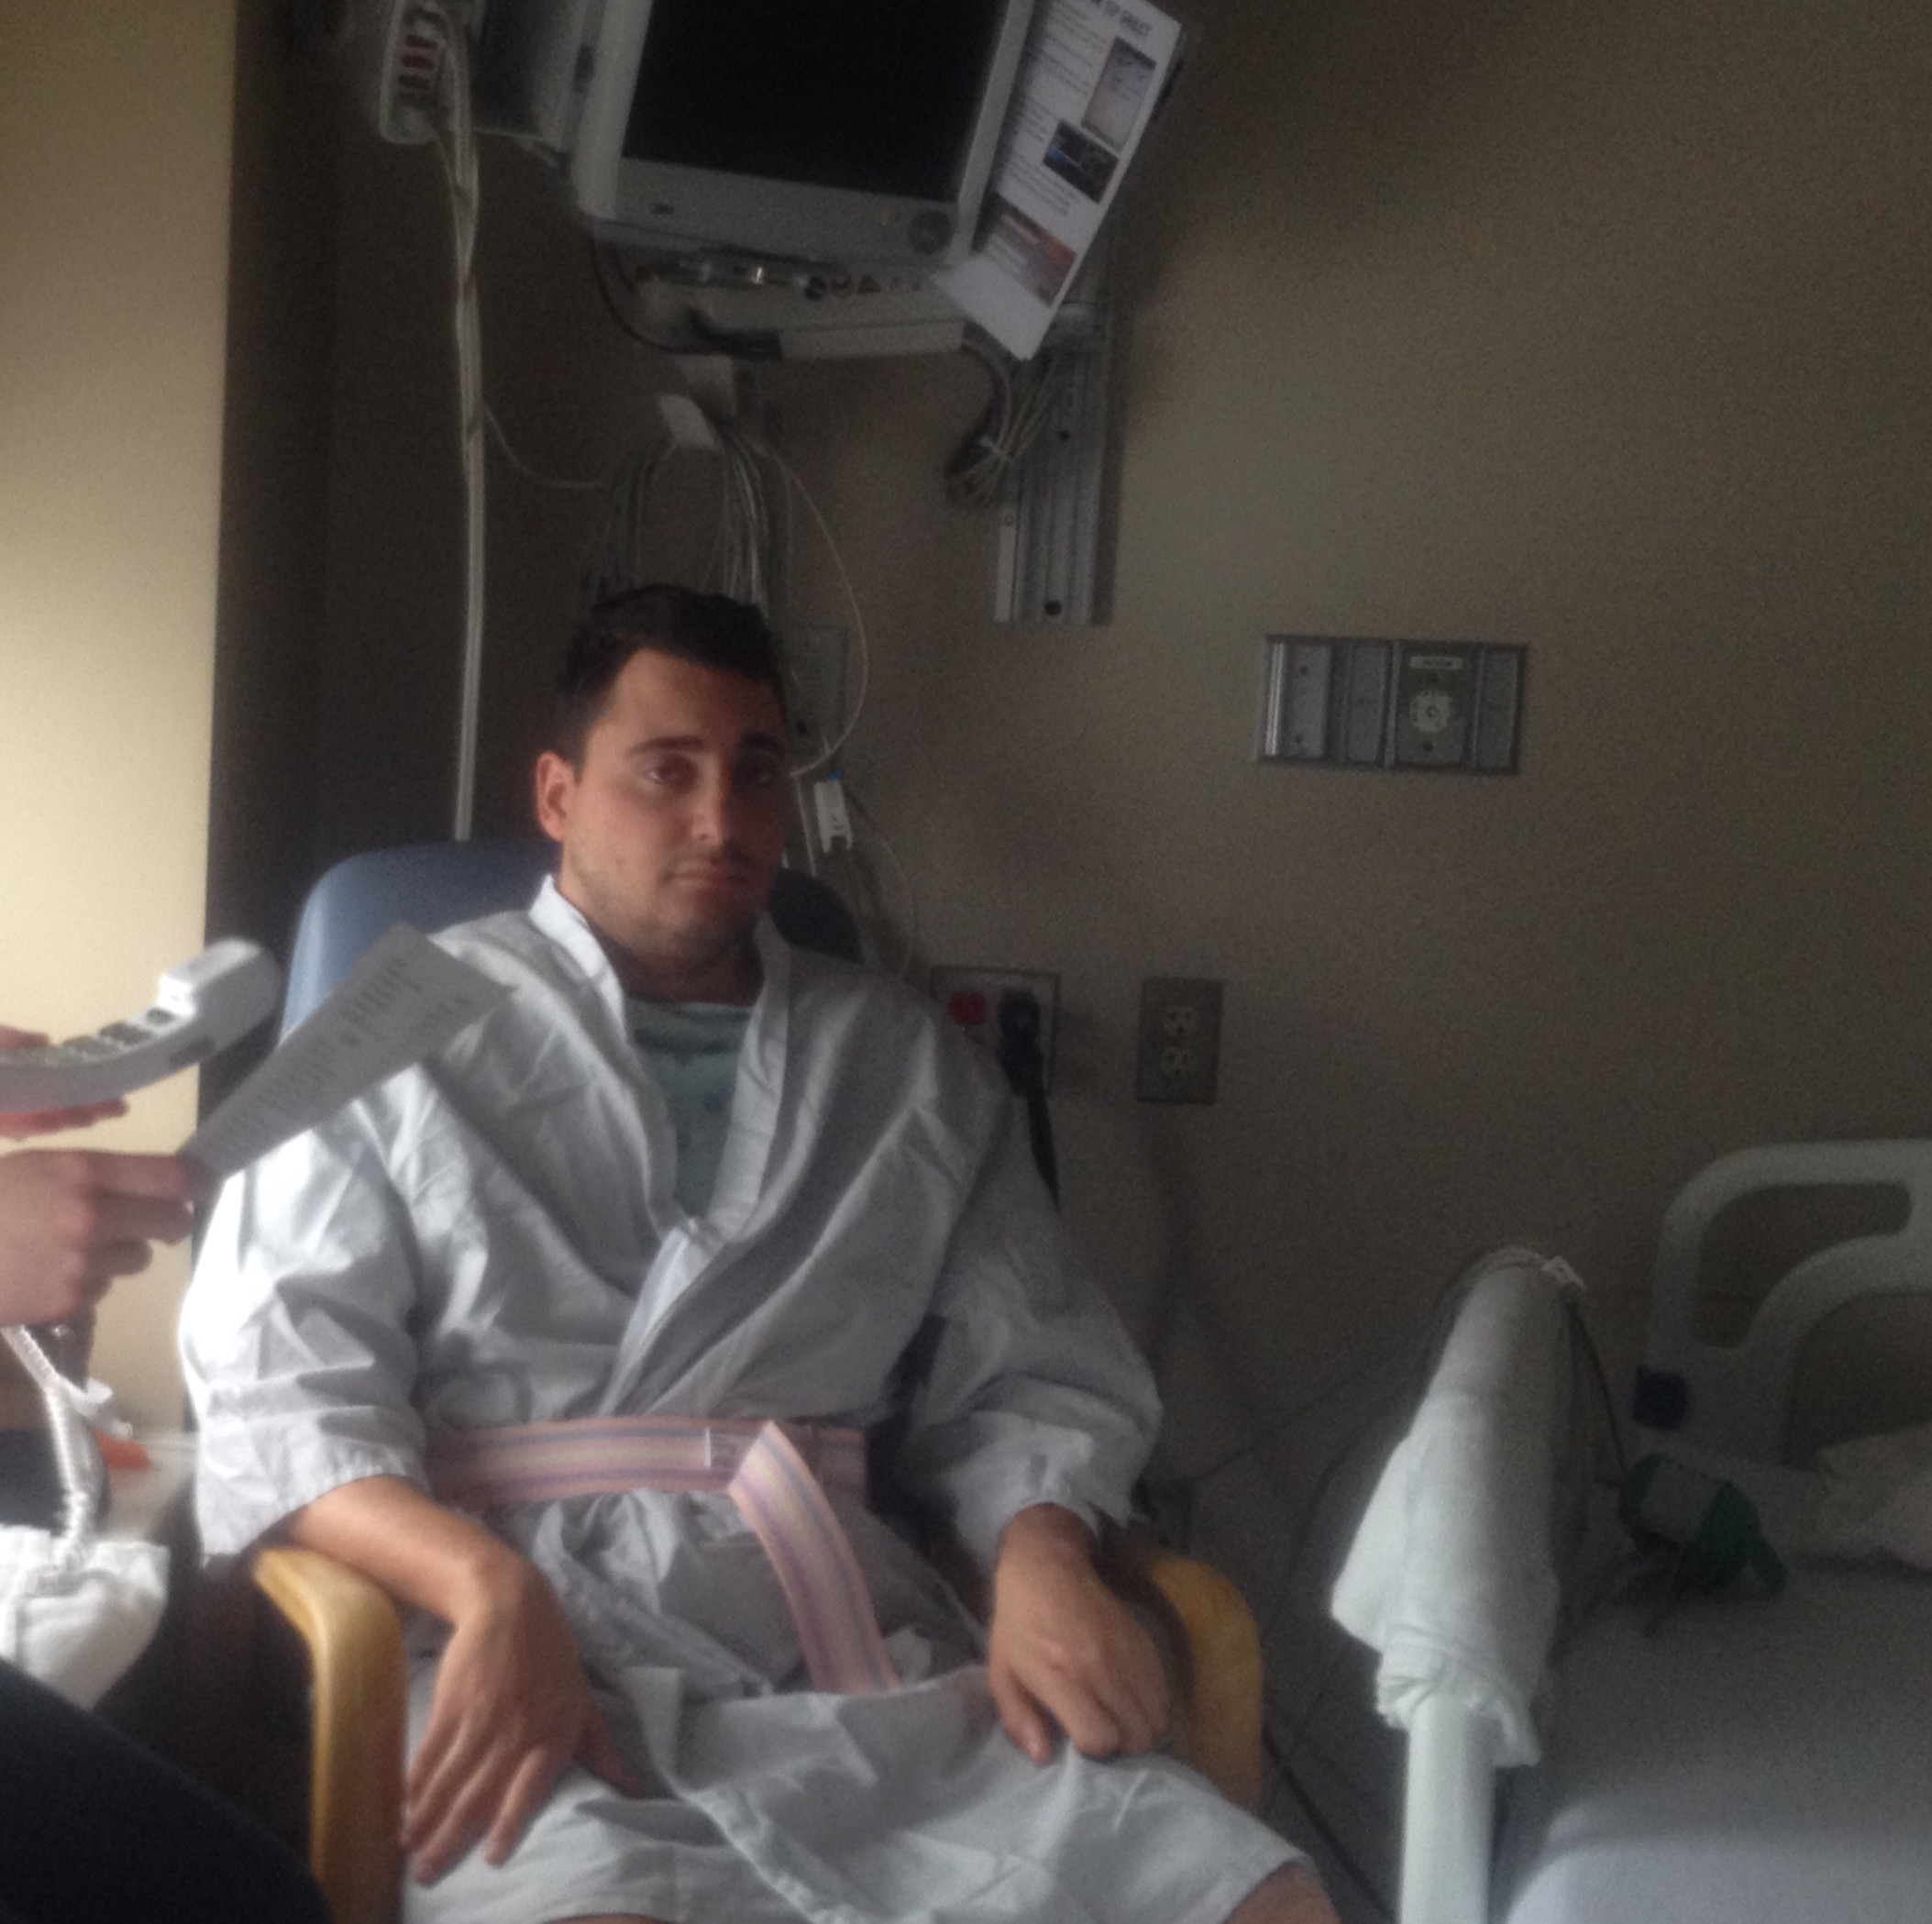 March 2015, days after my injury in the neuro-ICU,sitting up for the first time post-injury.